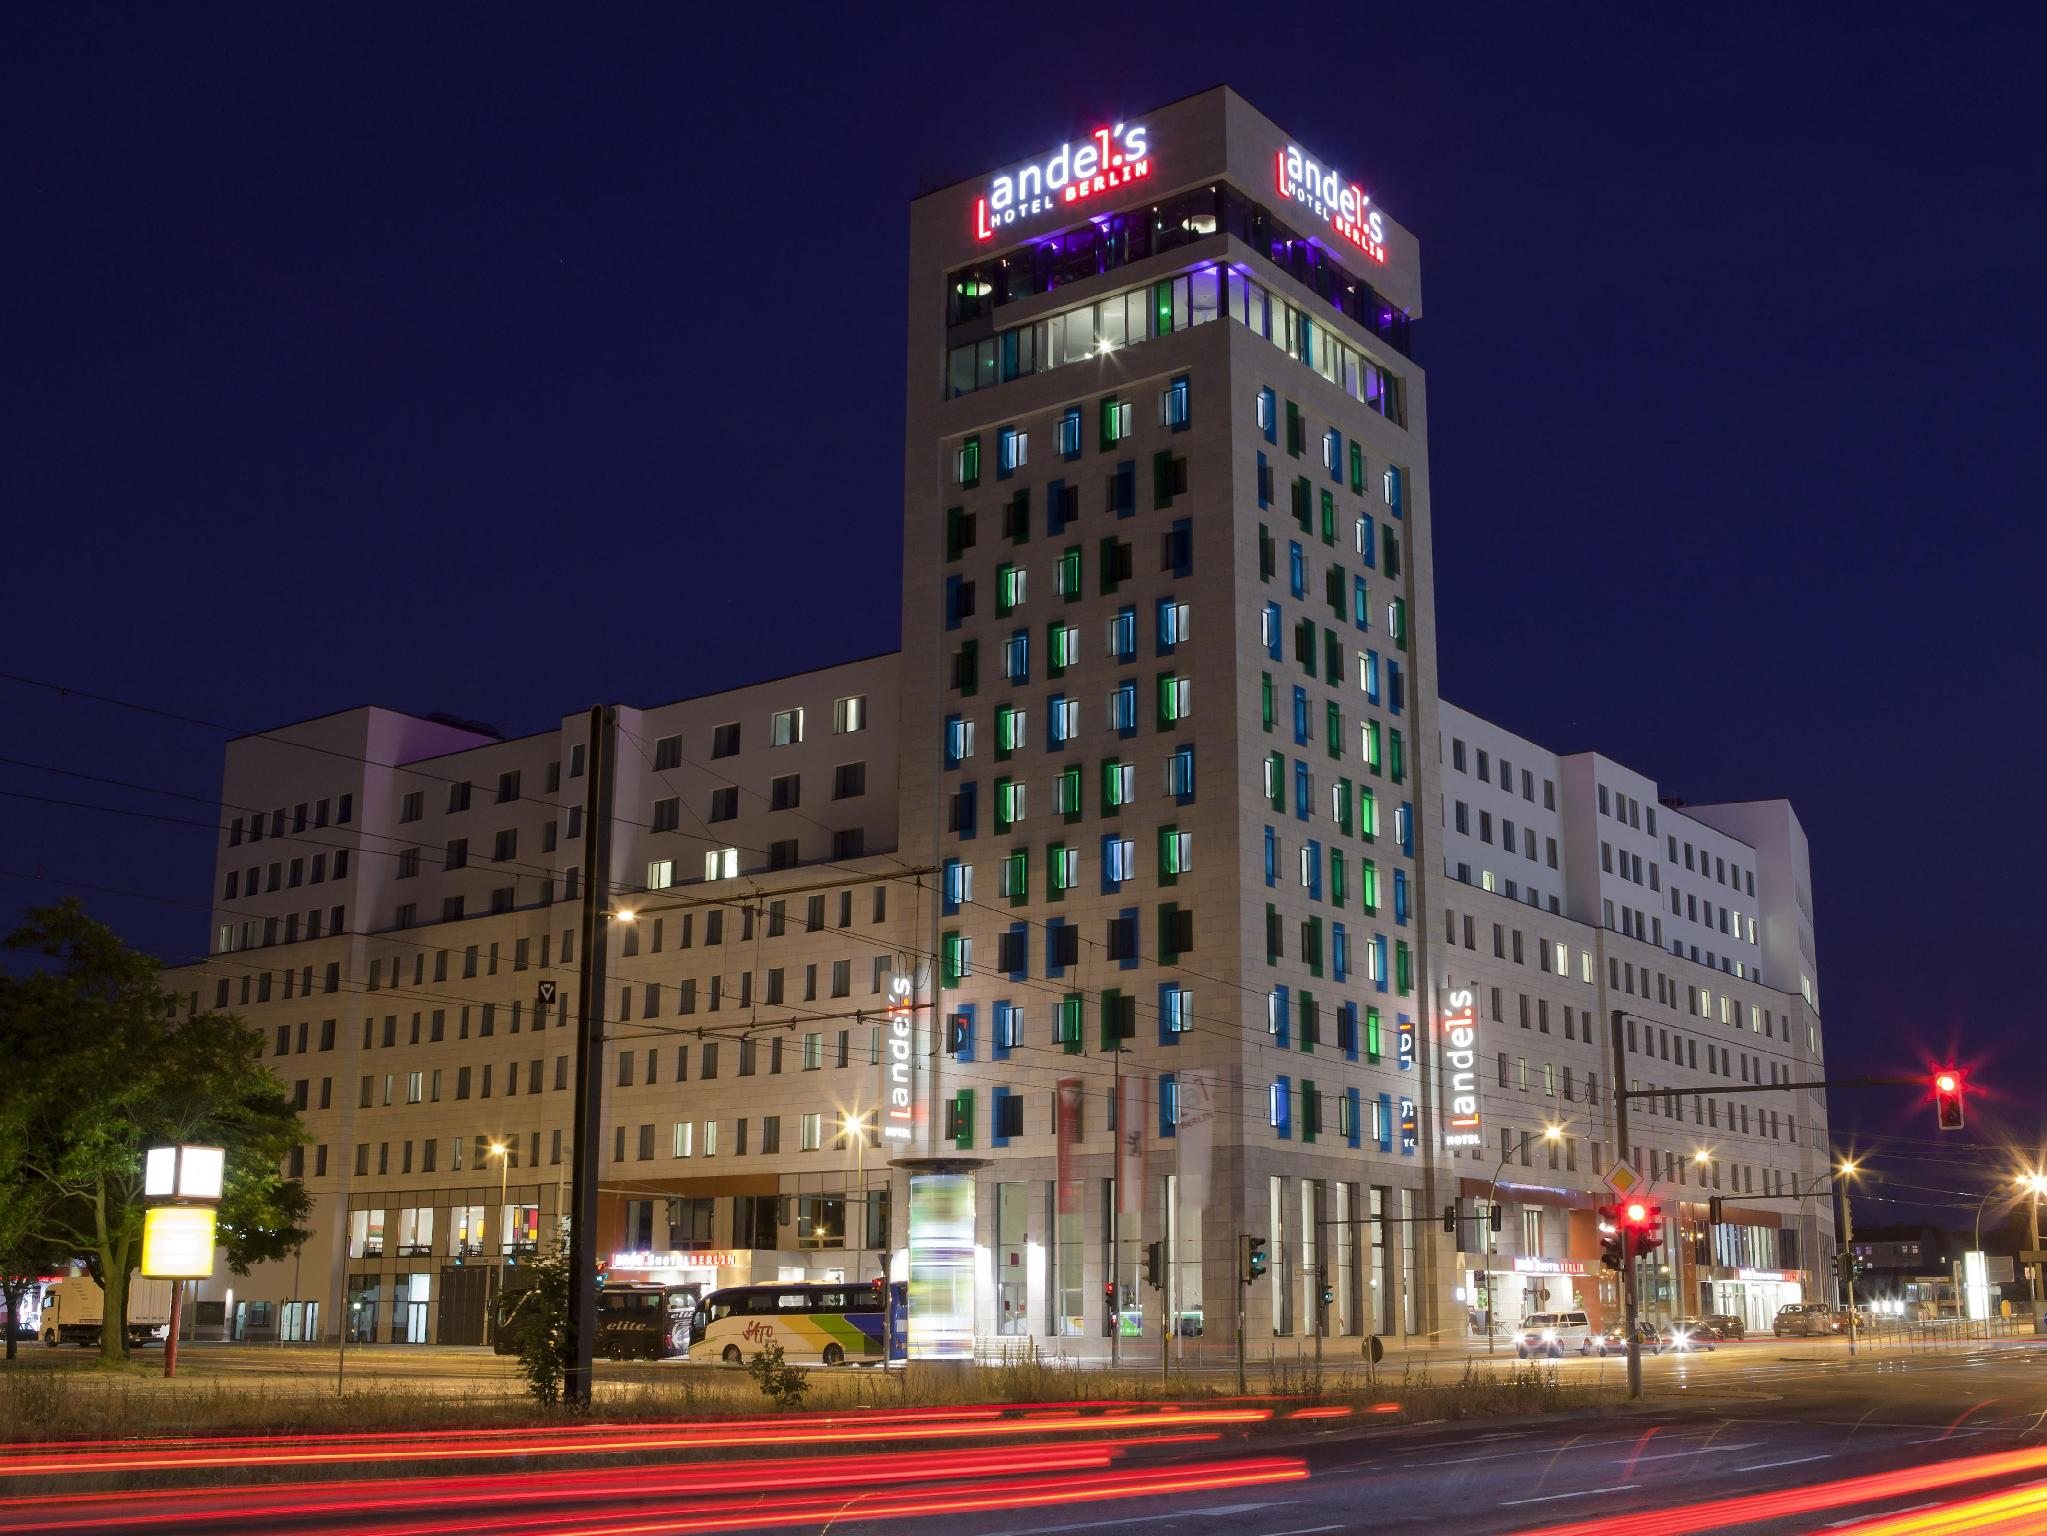 andel's Hotel Berlin, managed by Vienna International Hotels and Resorts Берлин